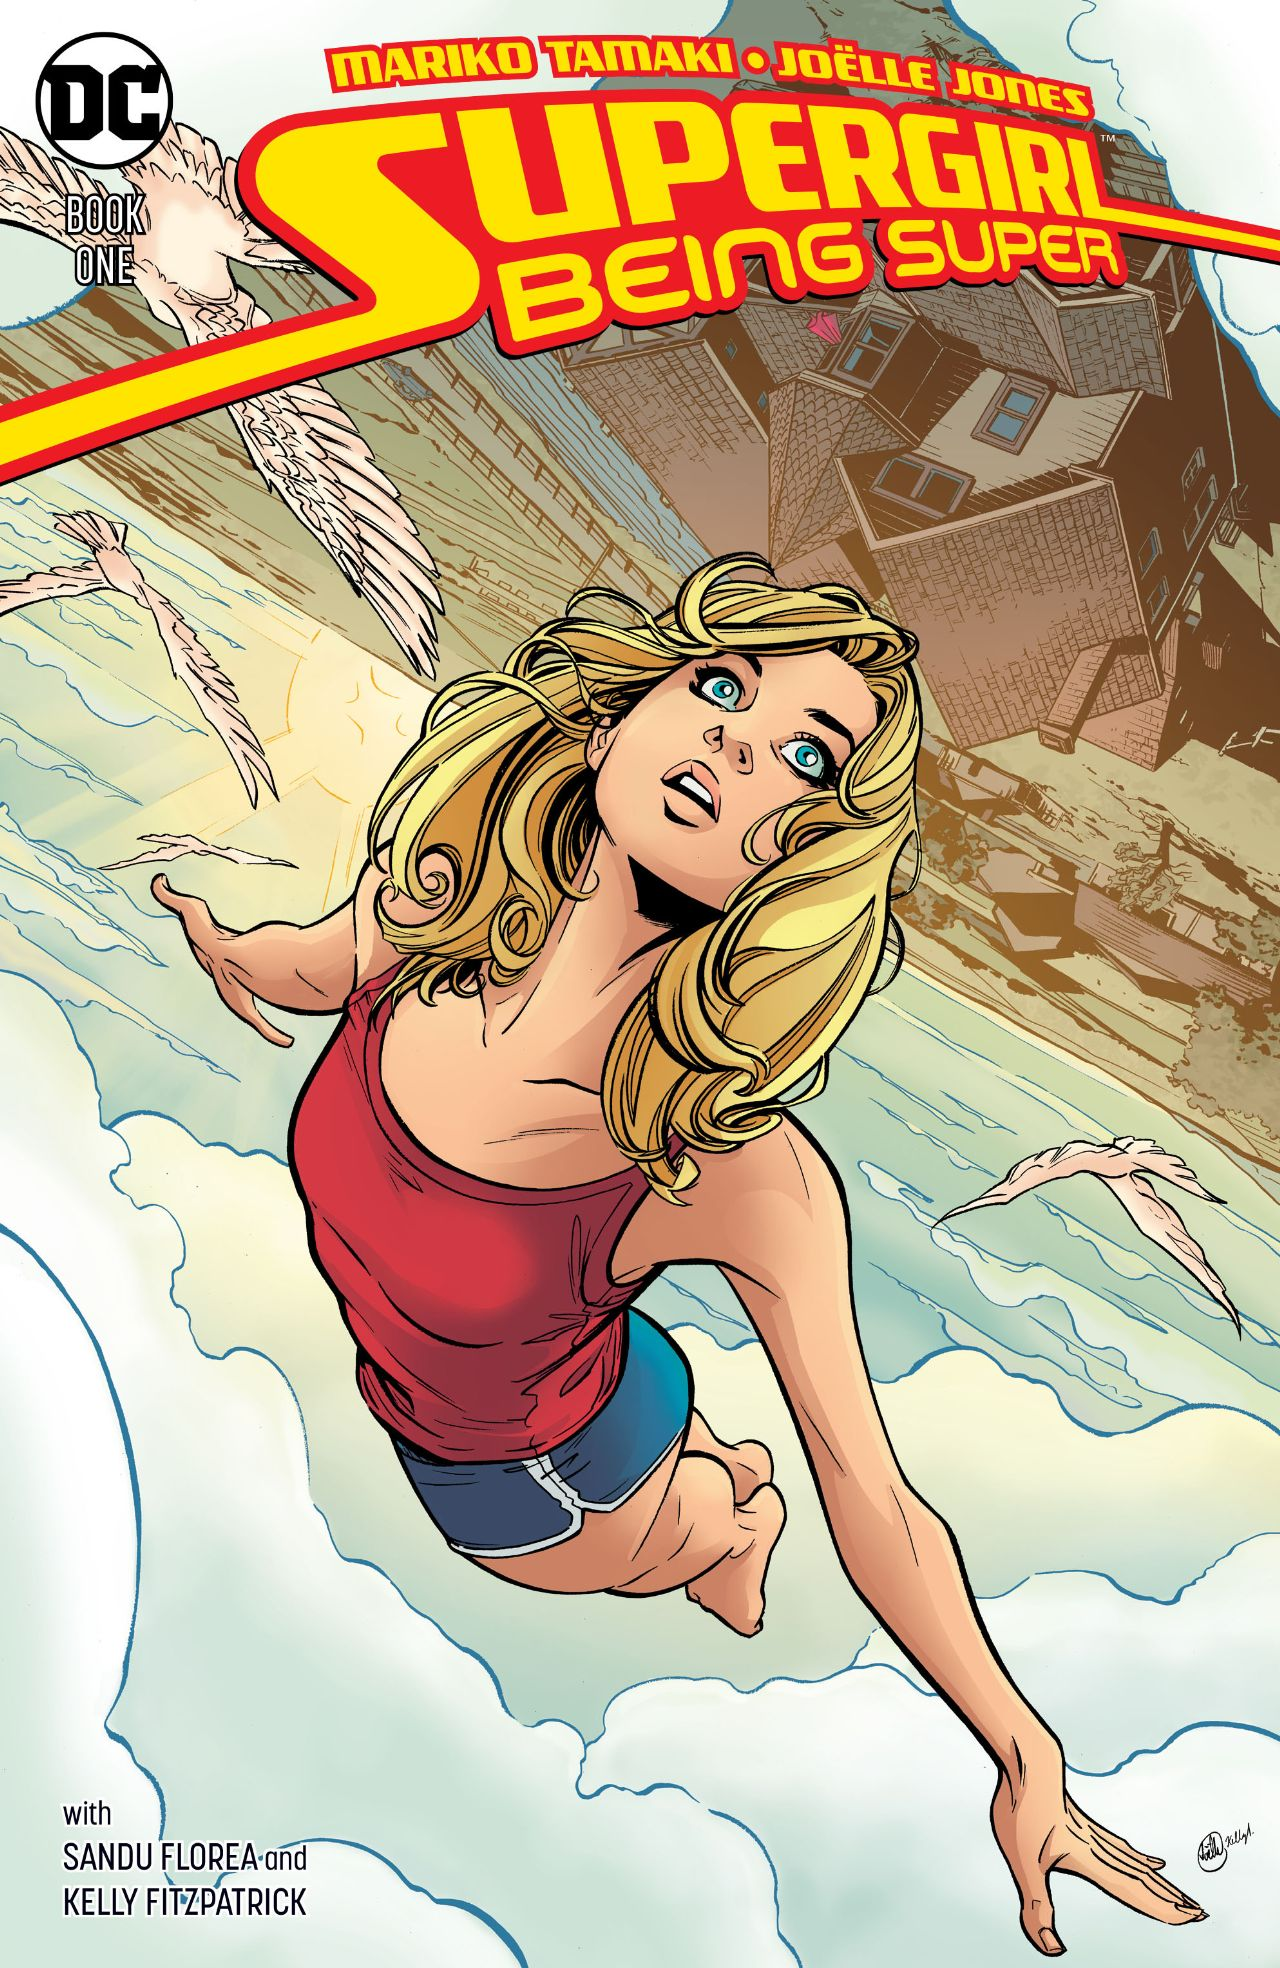 'Supergirl: Being Super' is a charming coming-of-age tale and welcome addition to the Superman mythos